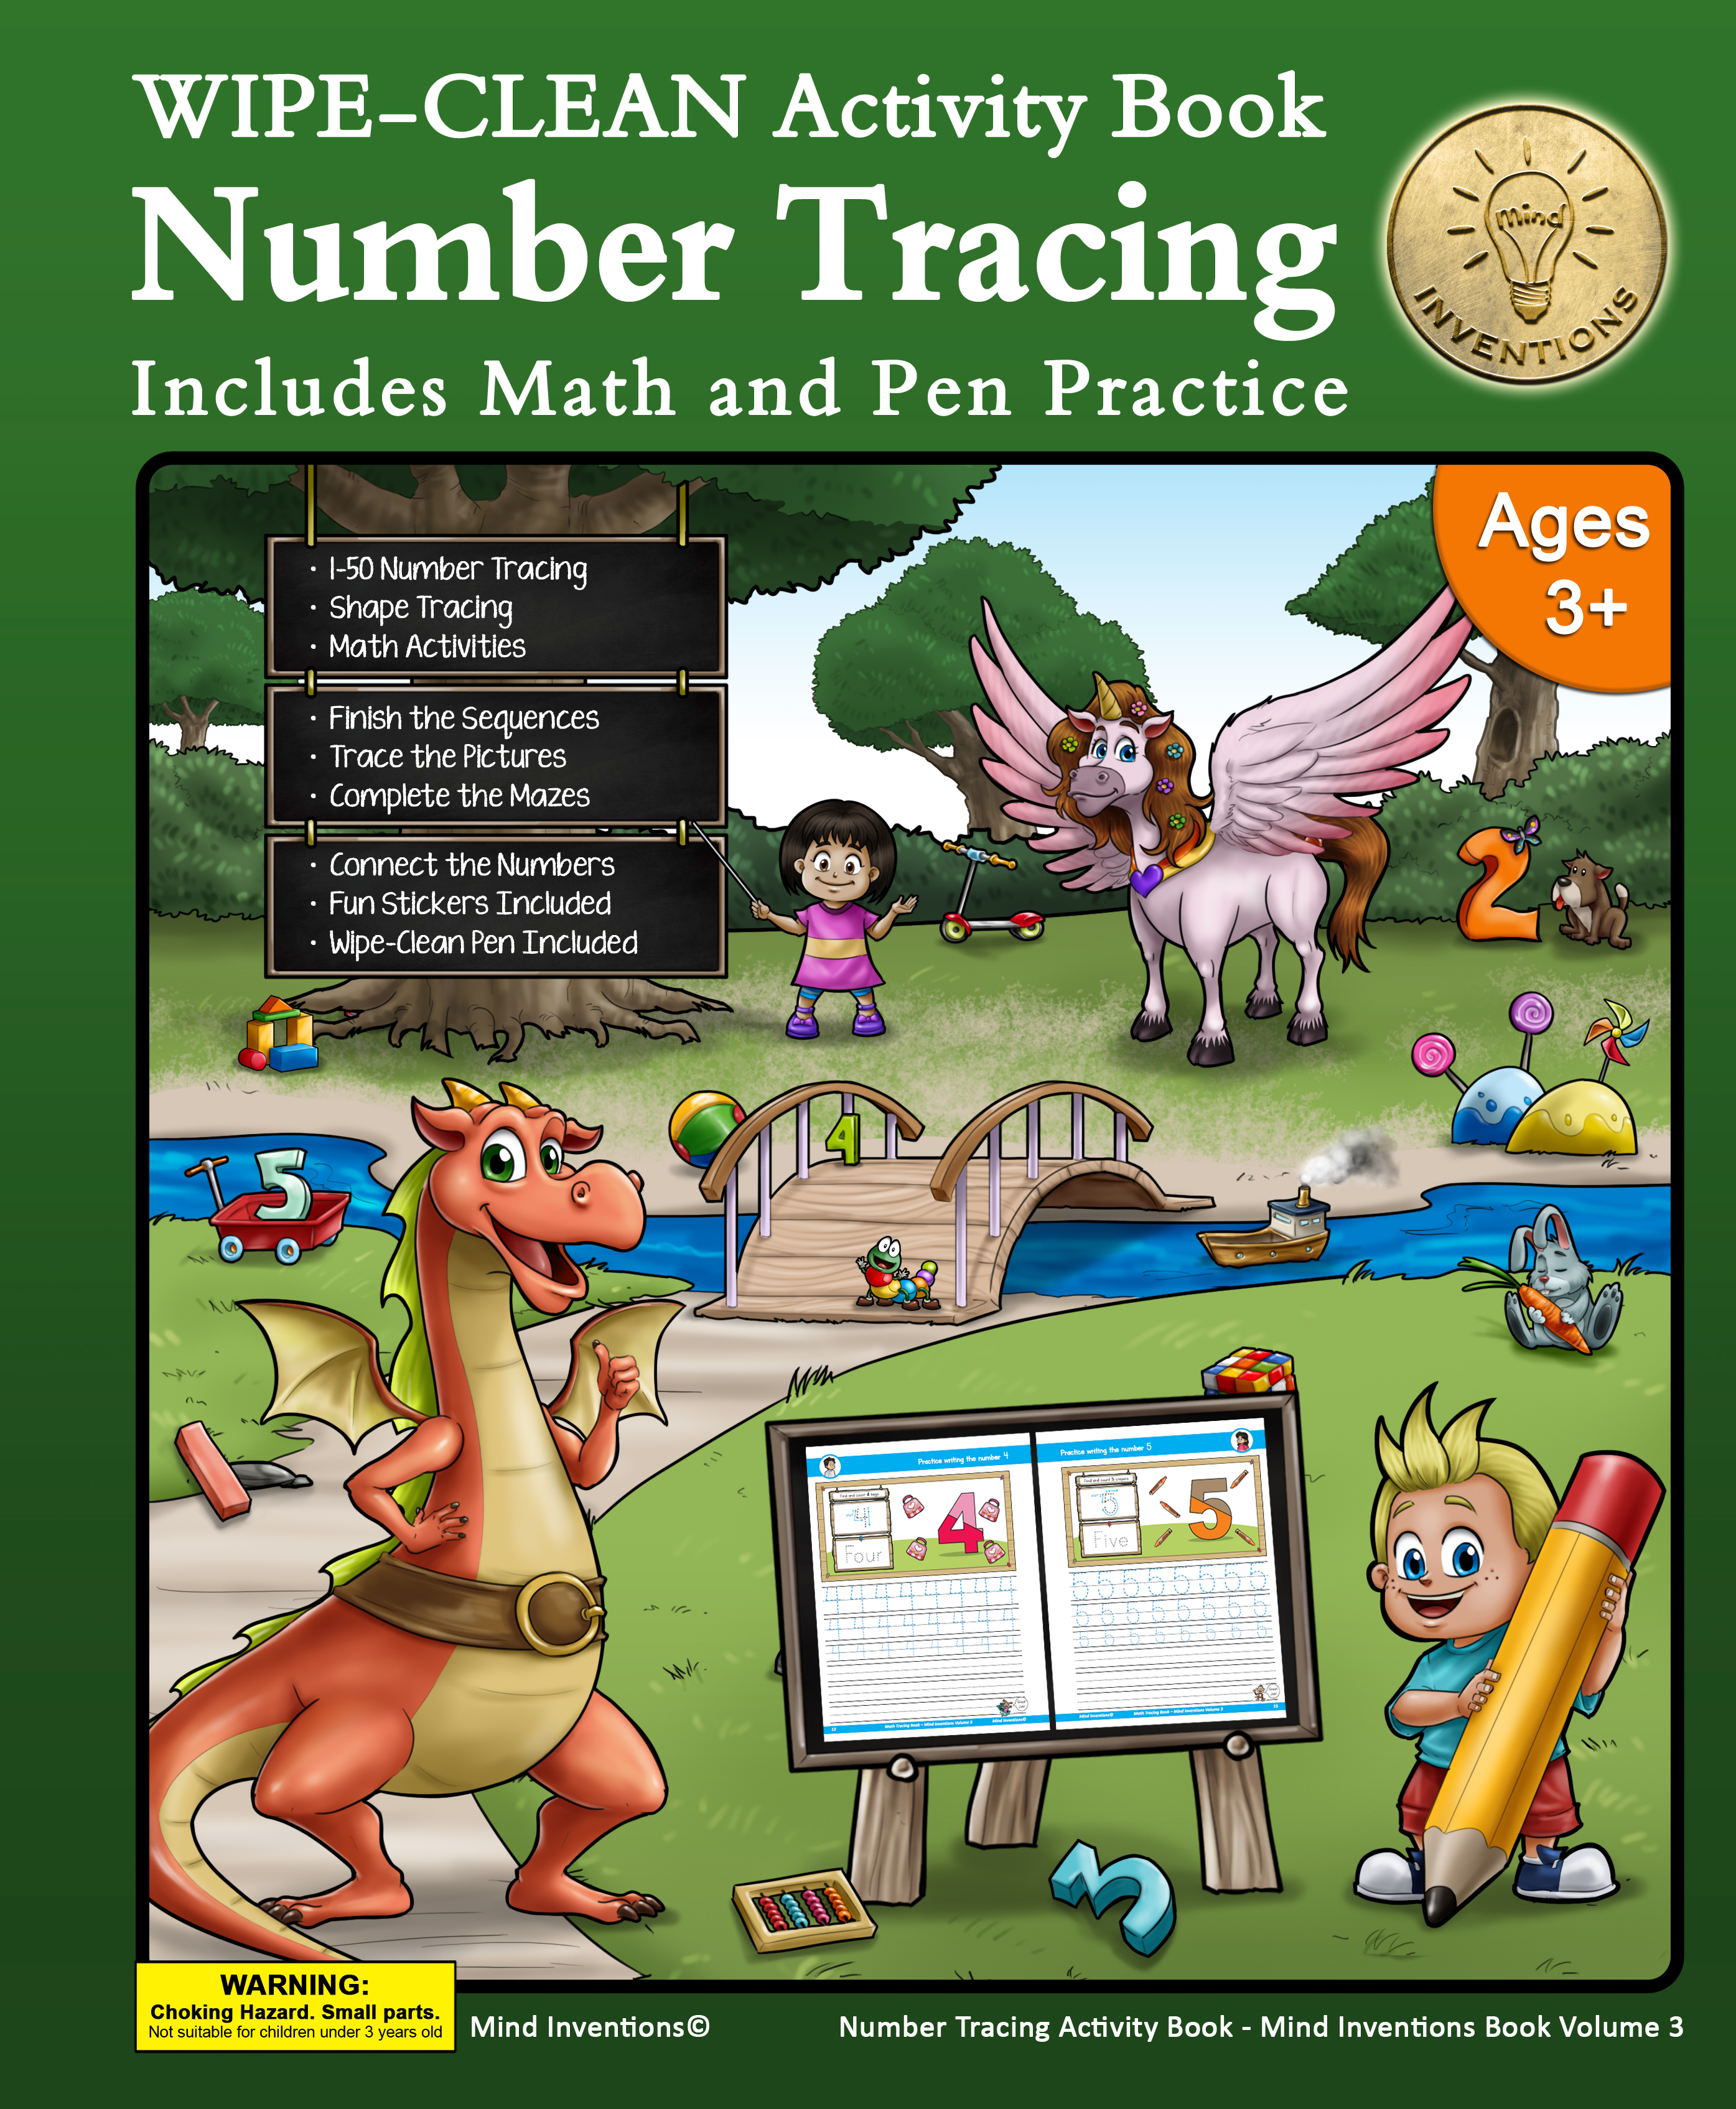 WIPE CLEAN Activity Book Volume 3 – (Number Tracing)